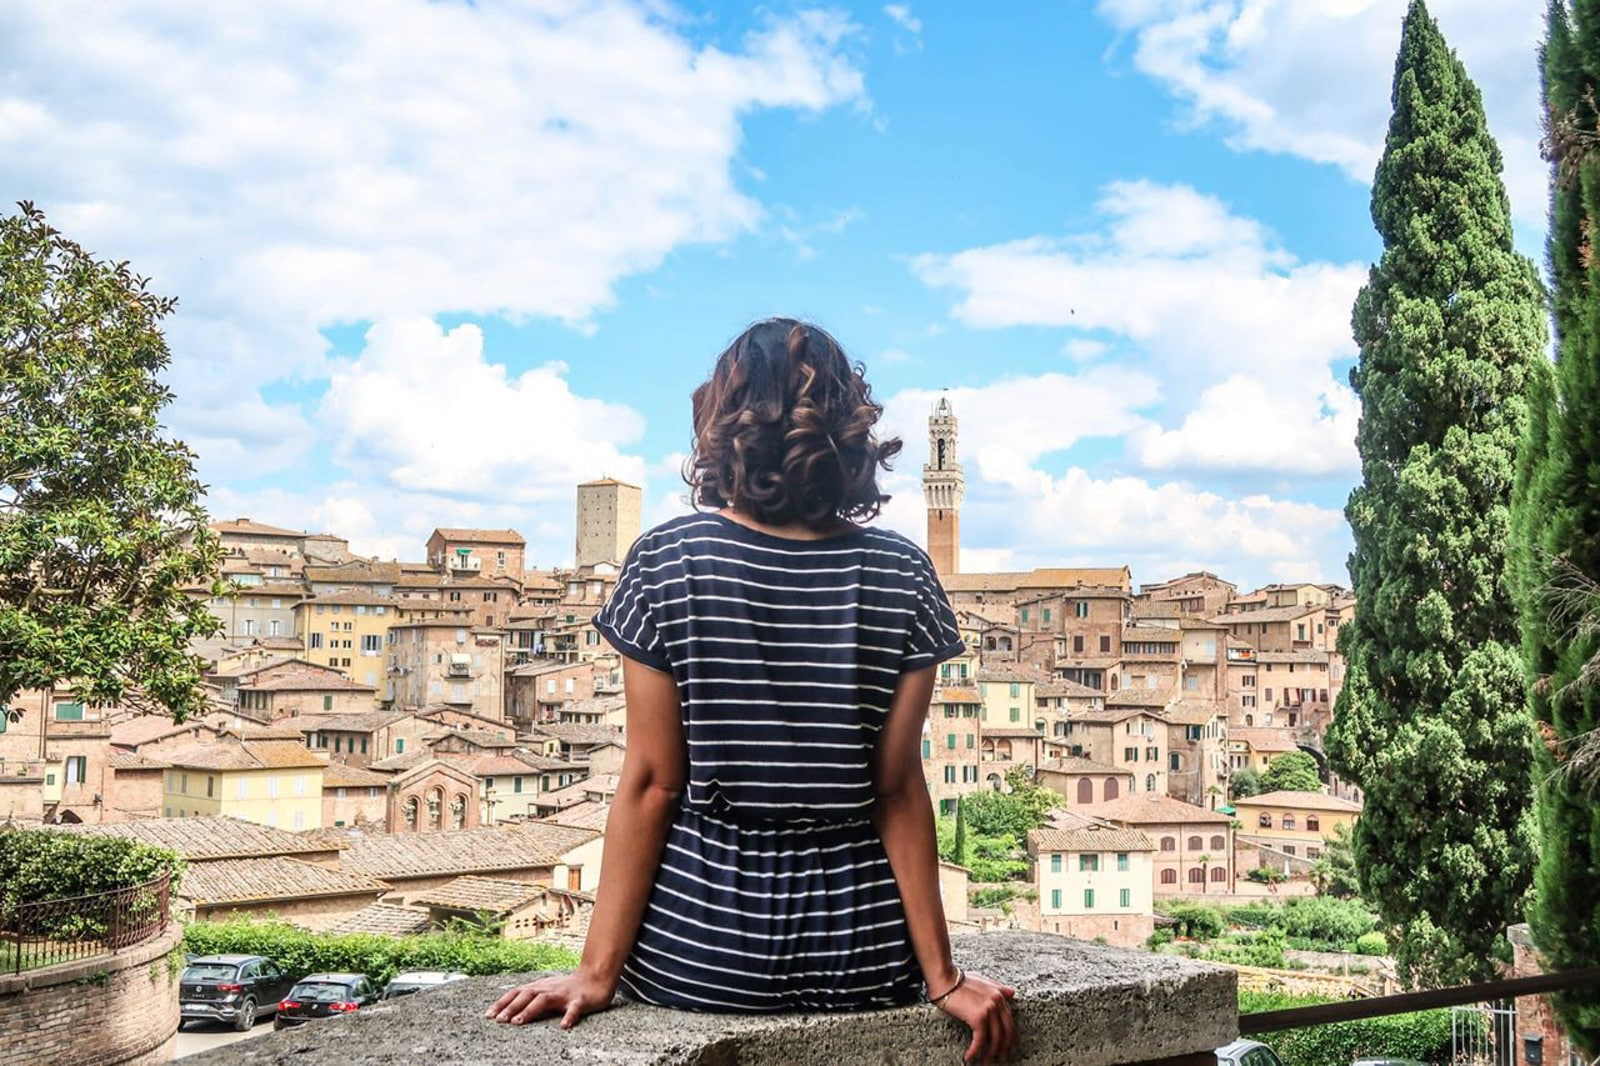 Solo female traveler from Kuwait - Sundes in Siena, Italy